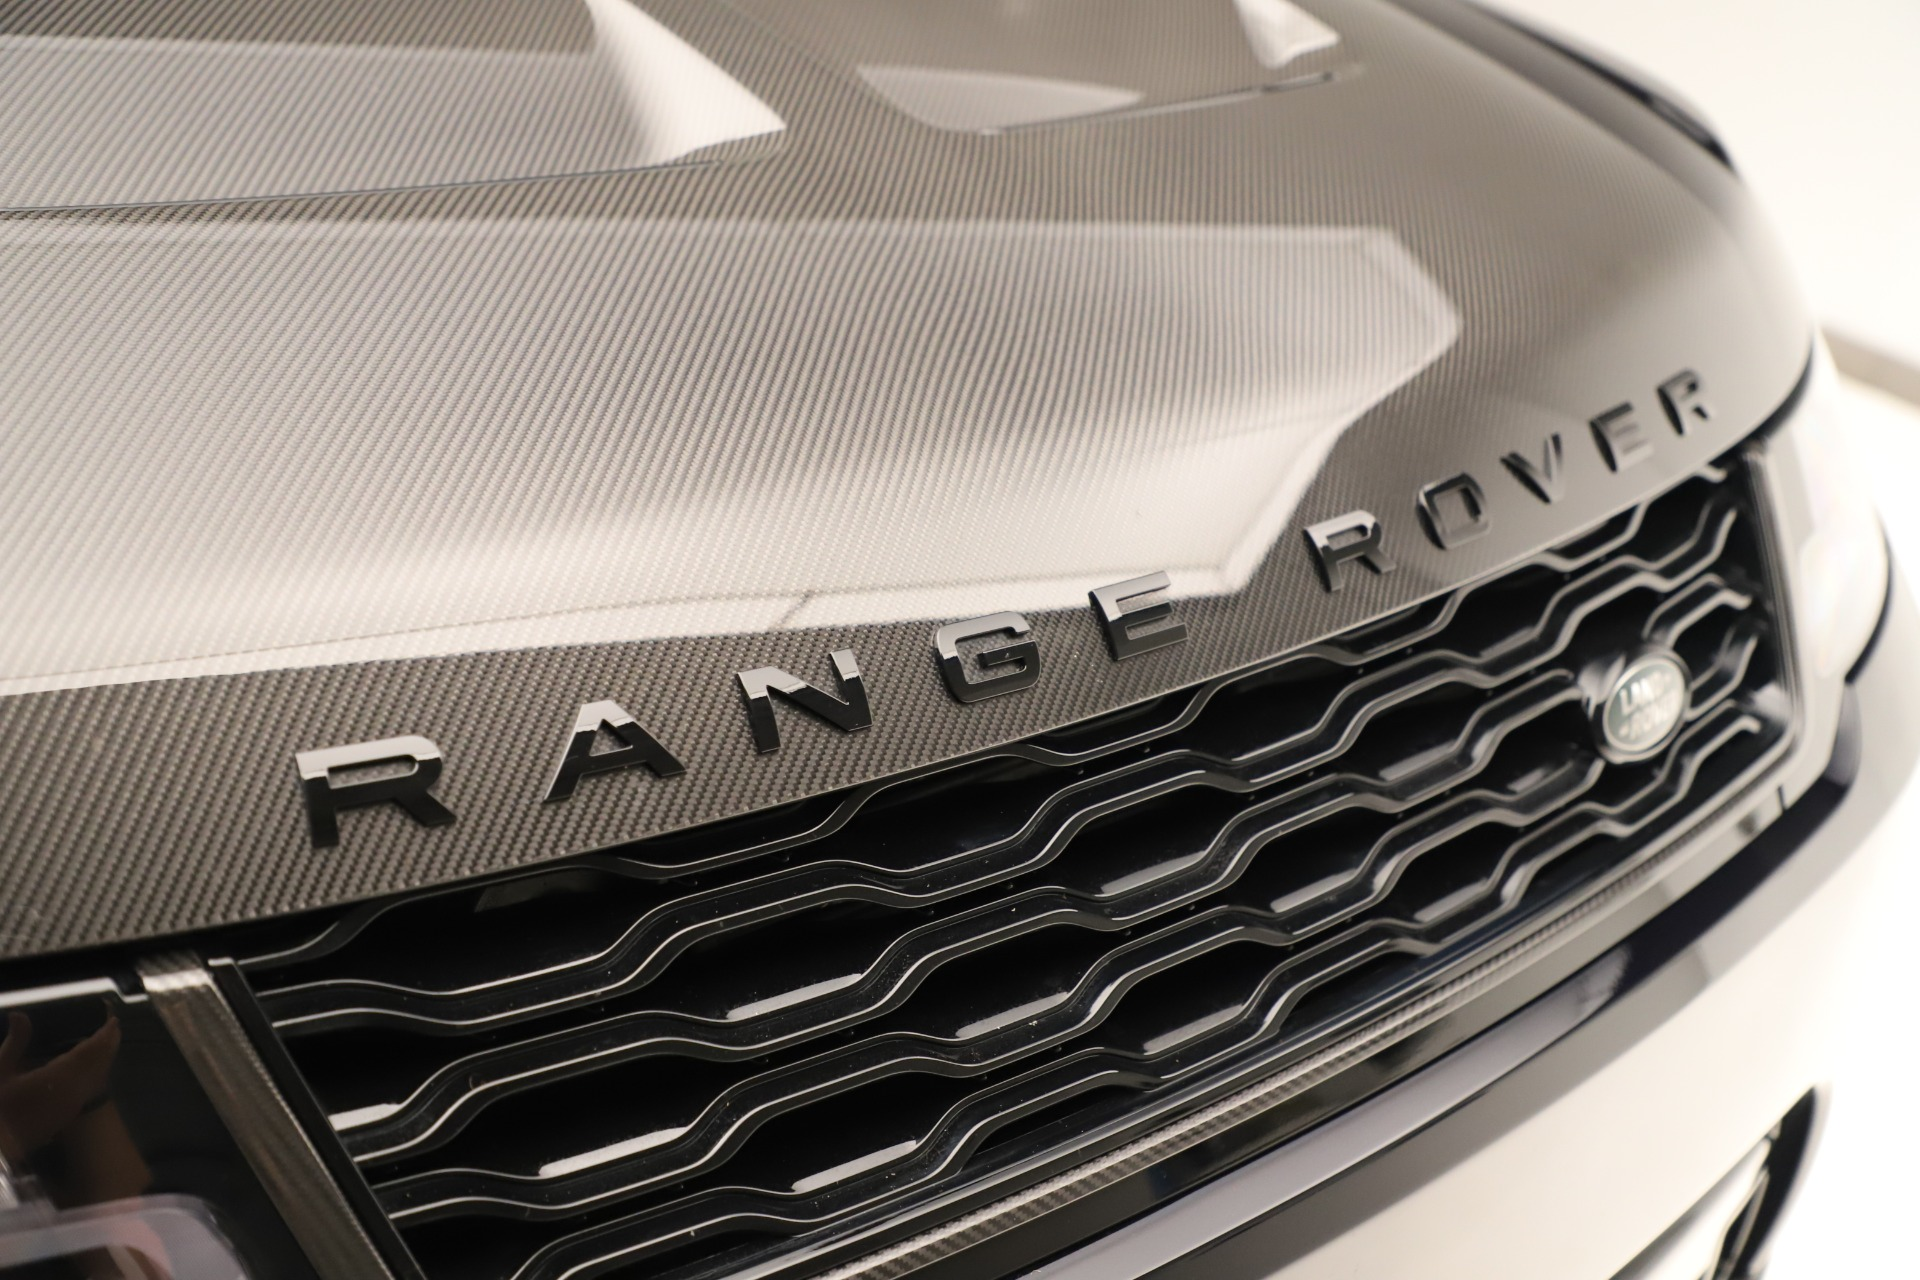 Used 2019 Land Rover Range Rover Sport SVR For Sale In Westport, CT 3353_p24